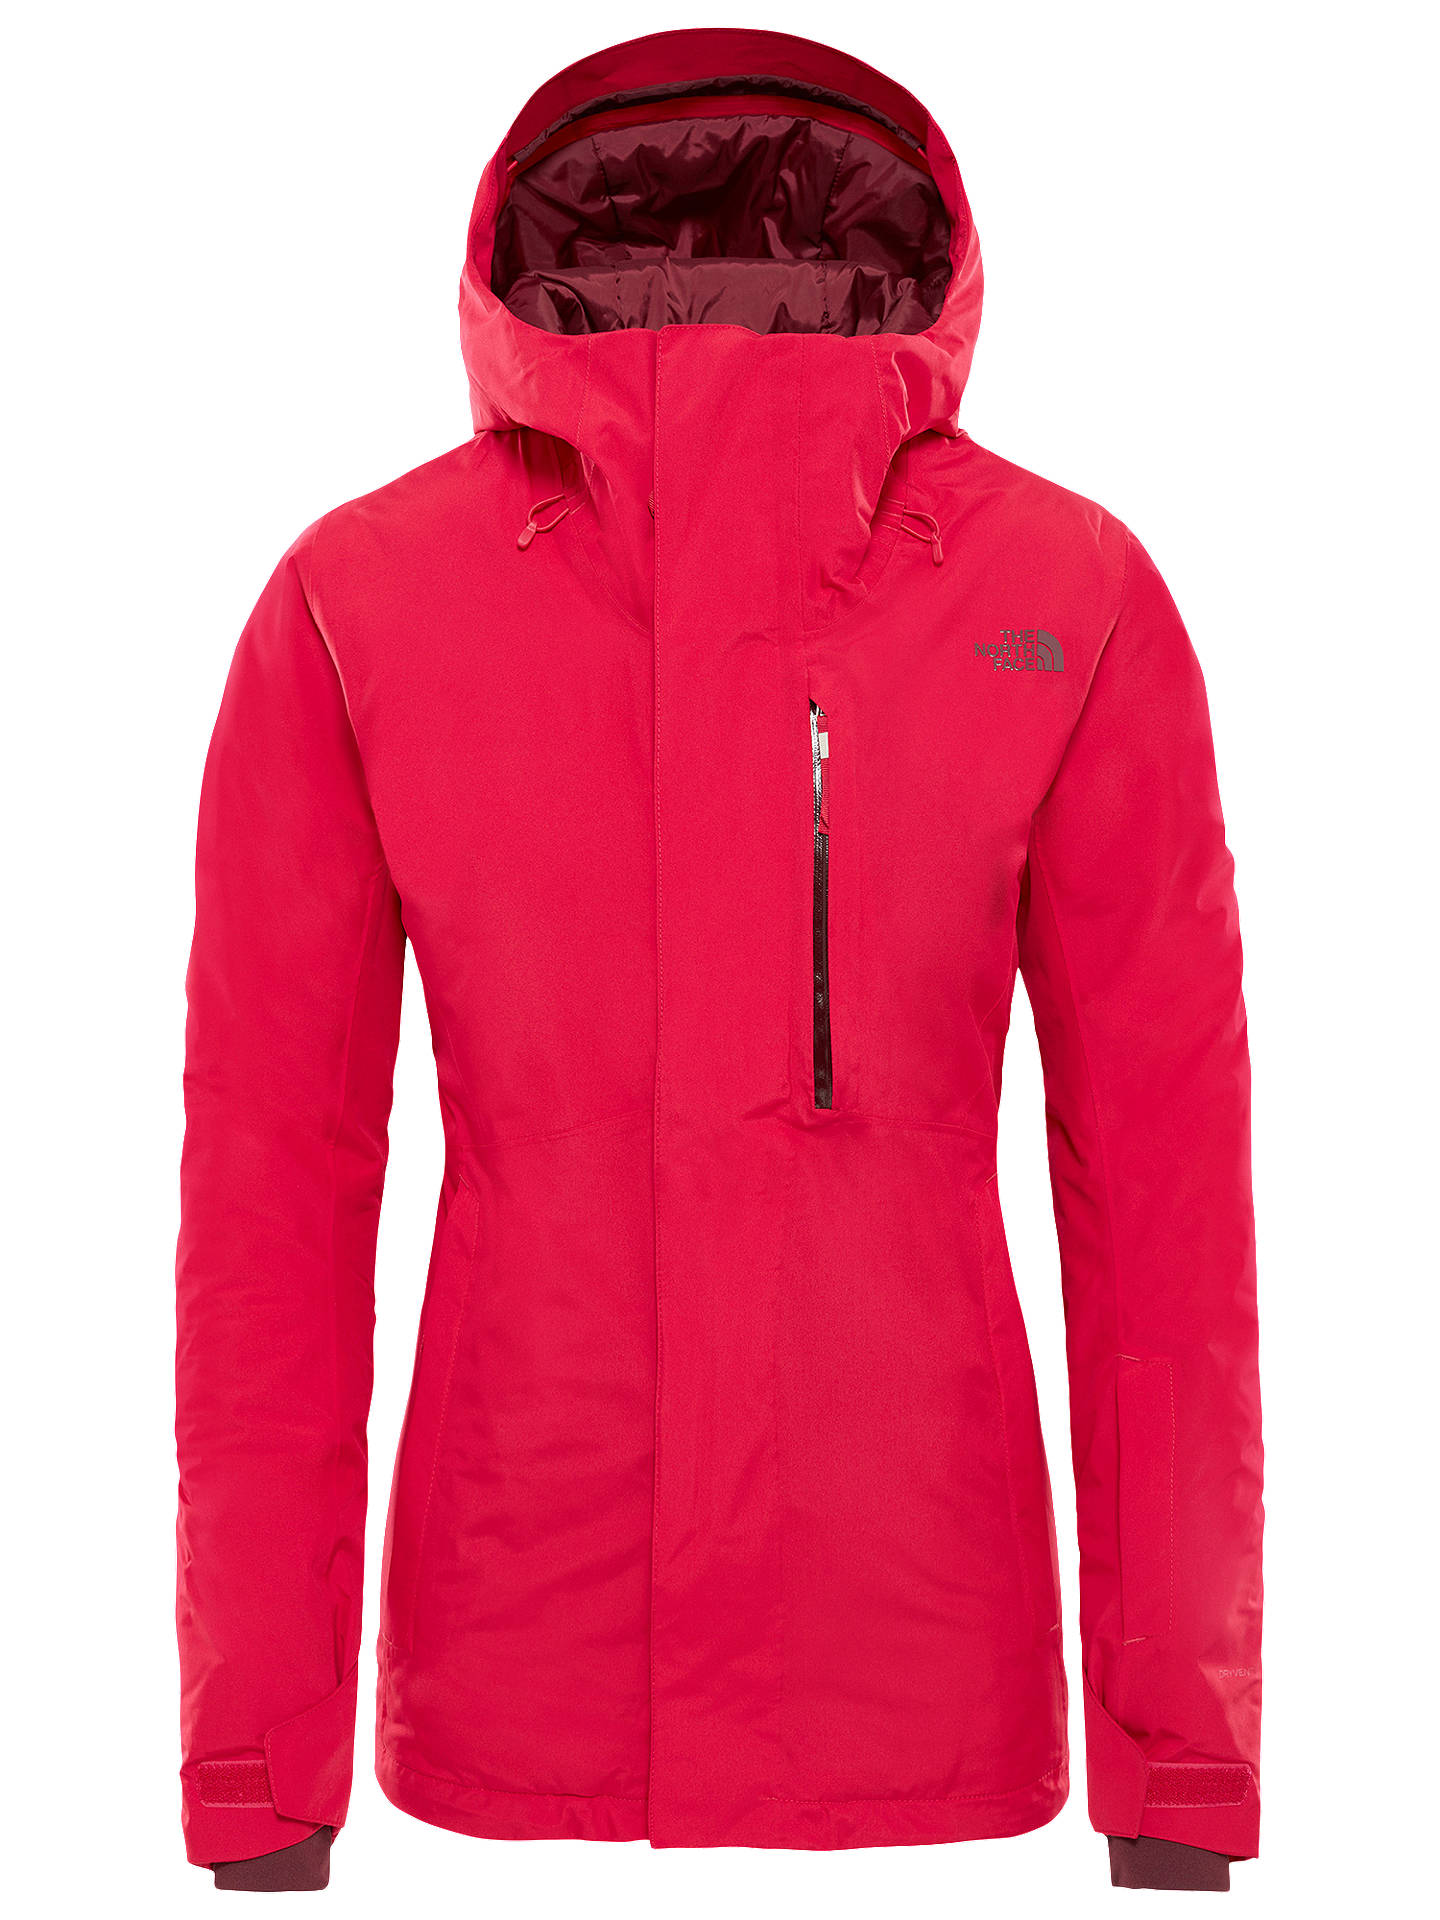 43bc88cfb6bc Buy The North Face Descendit Women s Waterproof Ski Jacket